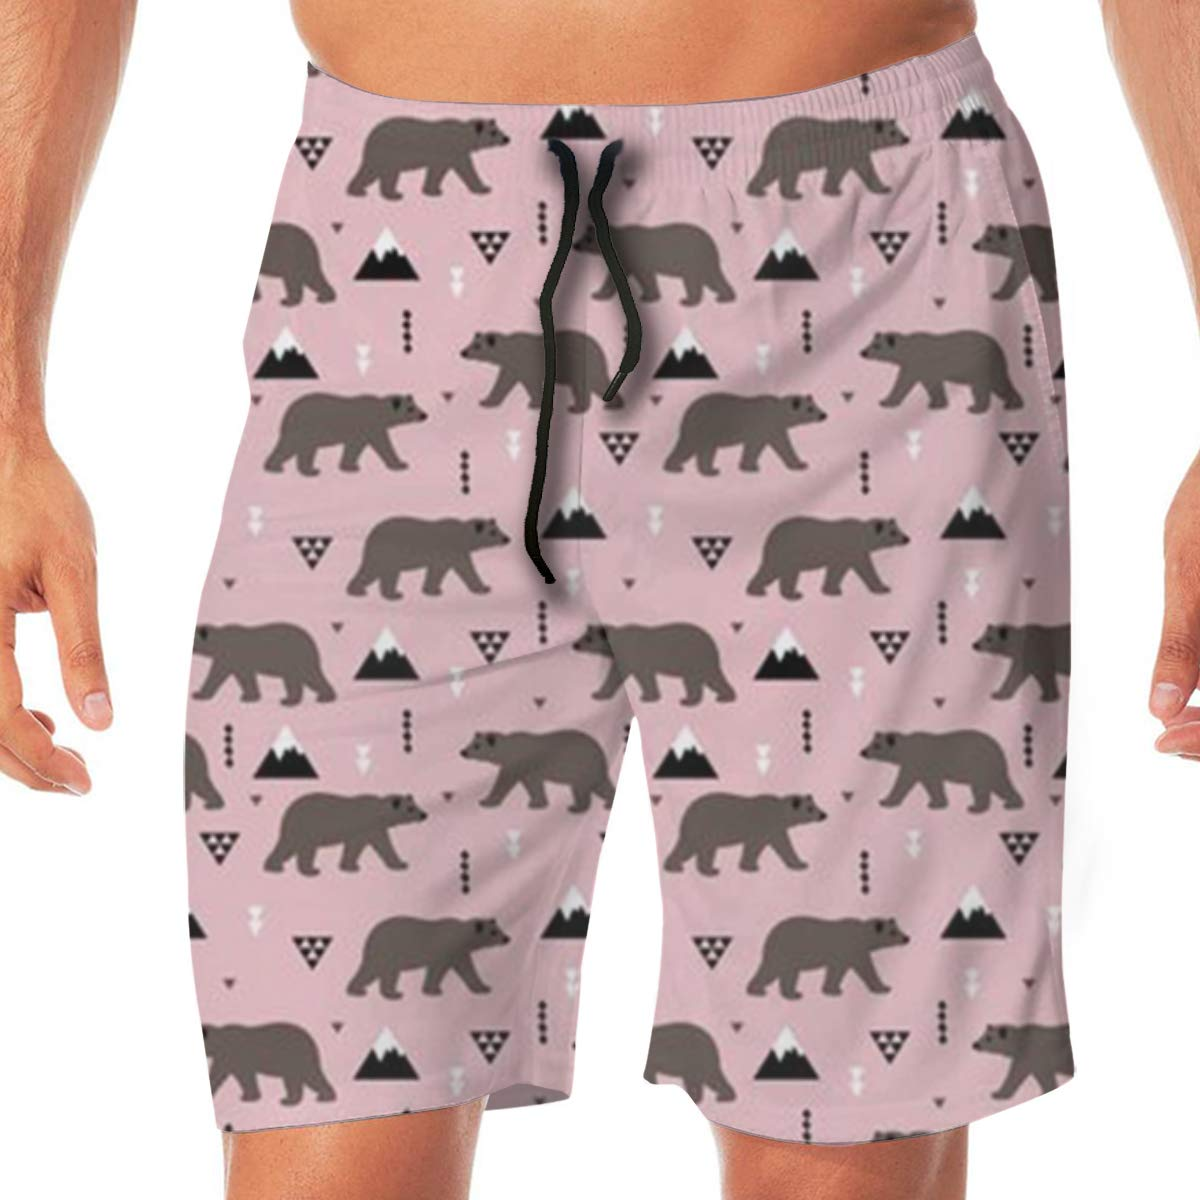 TR2YU7YT Forest Bear Casual Mens Swim Trunks Quick Dry Printed Beach Shorts Summer Boardshorts Bathing Suits with Drawstring